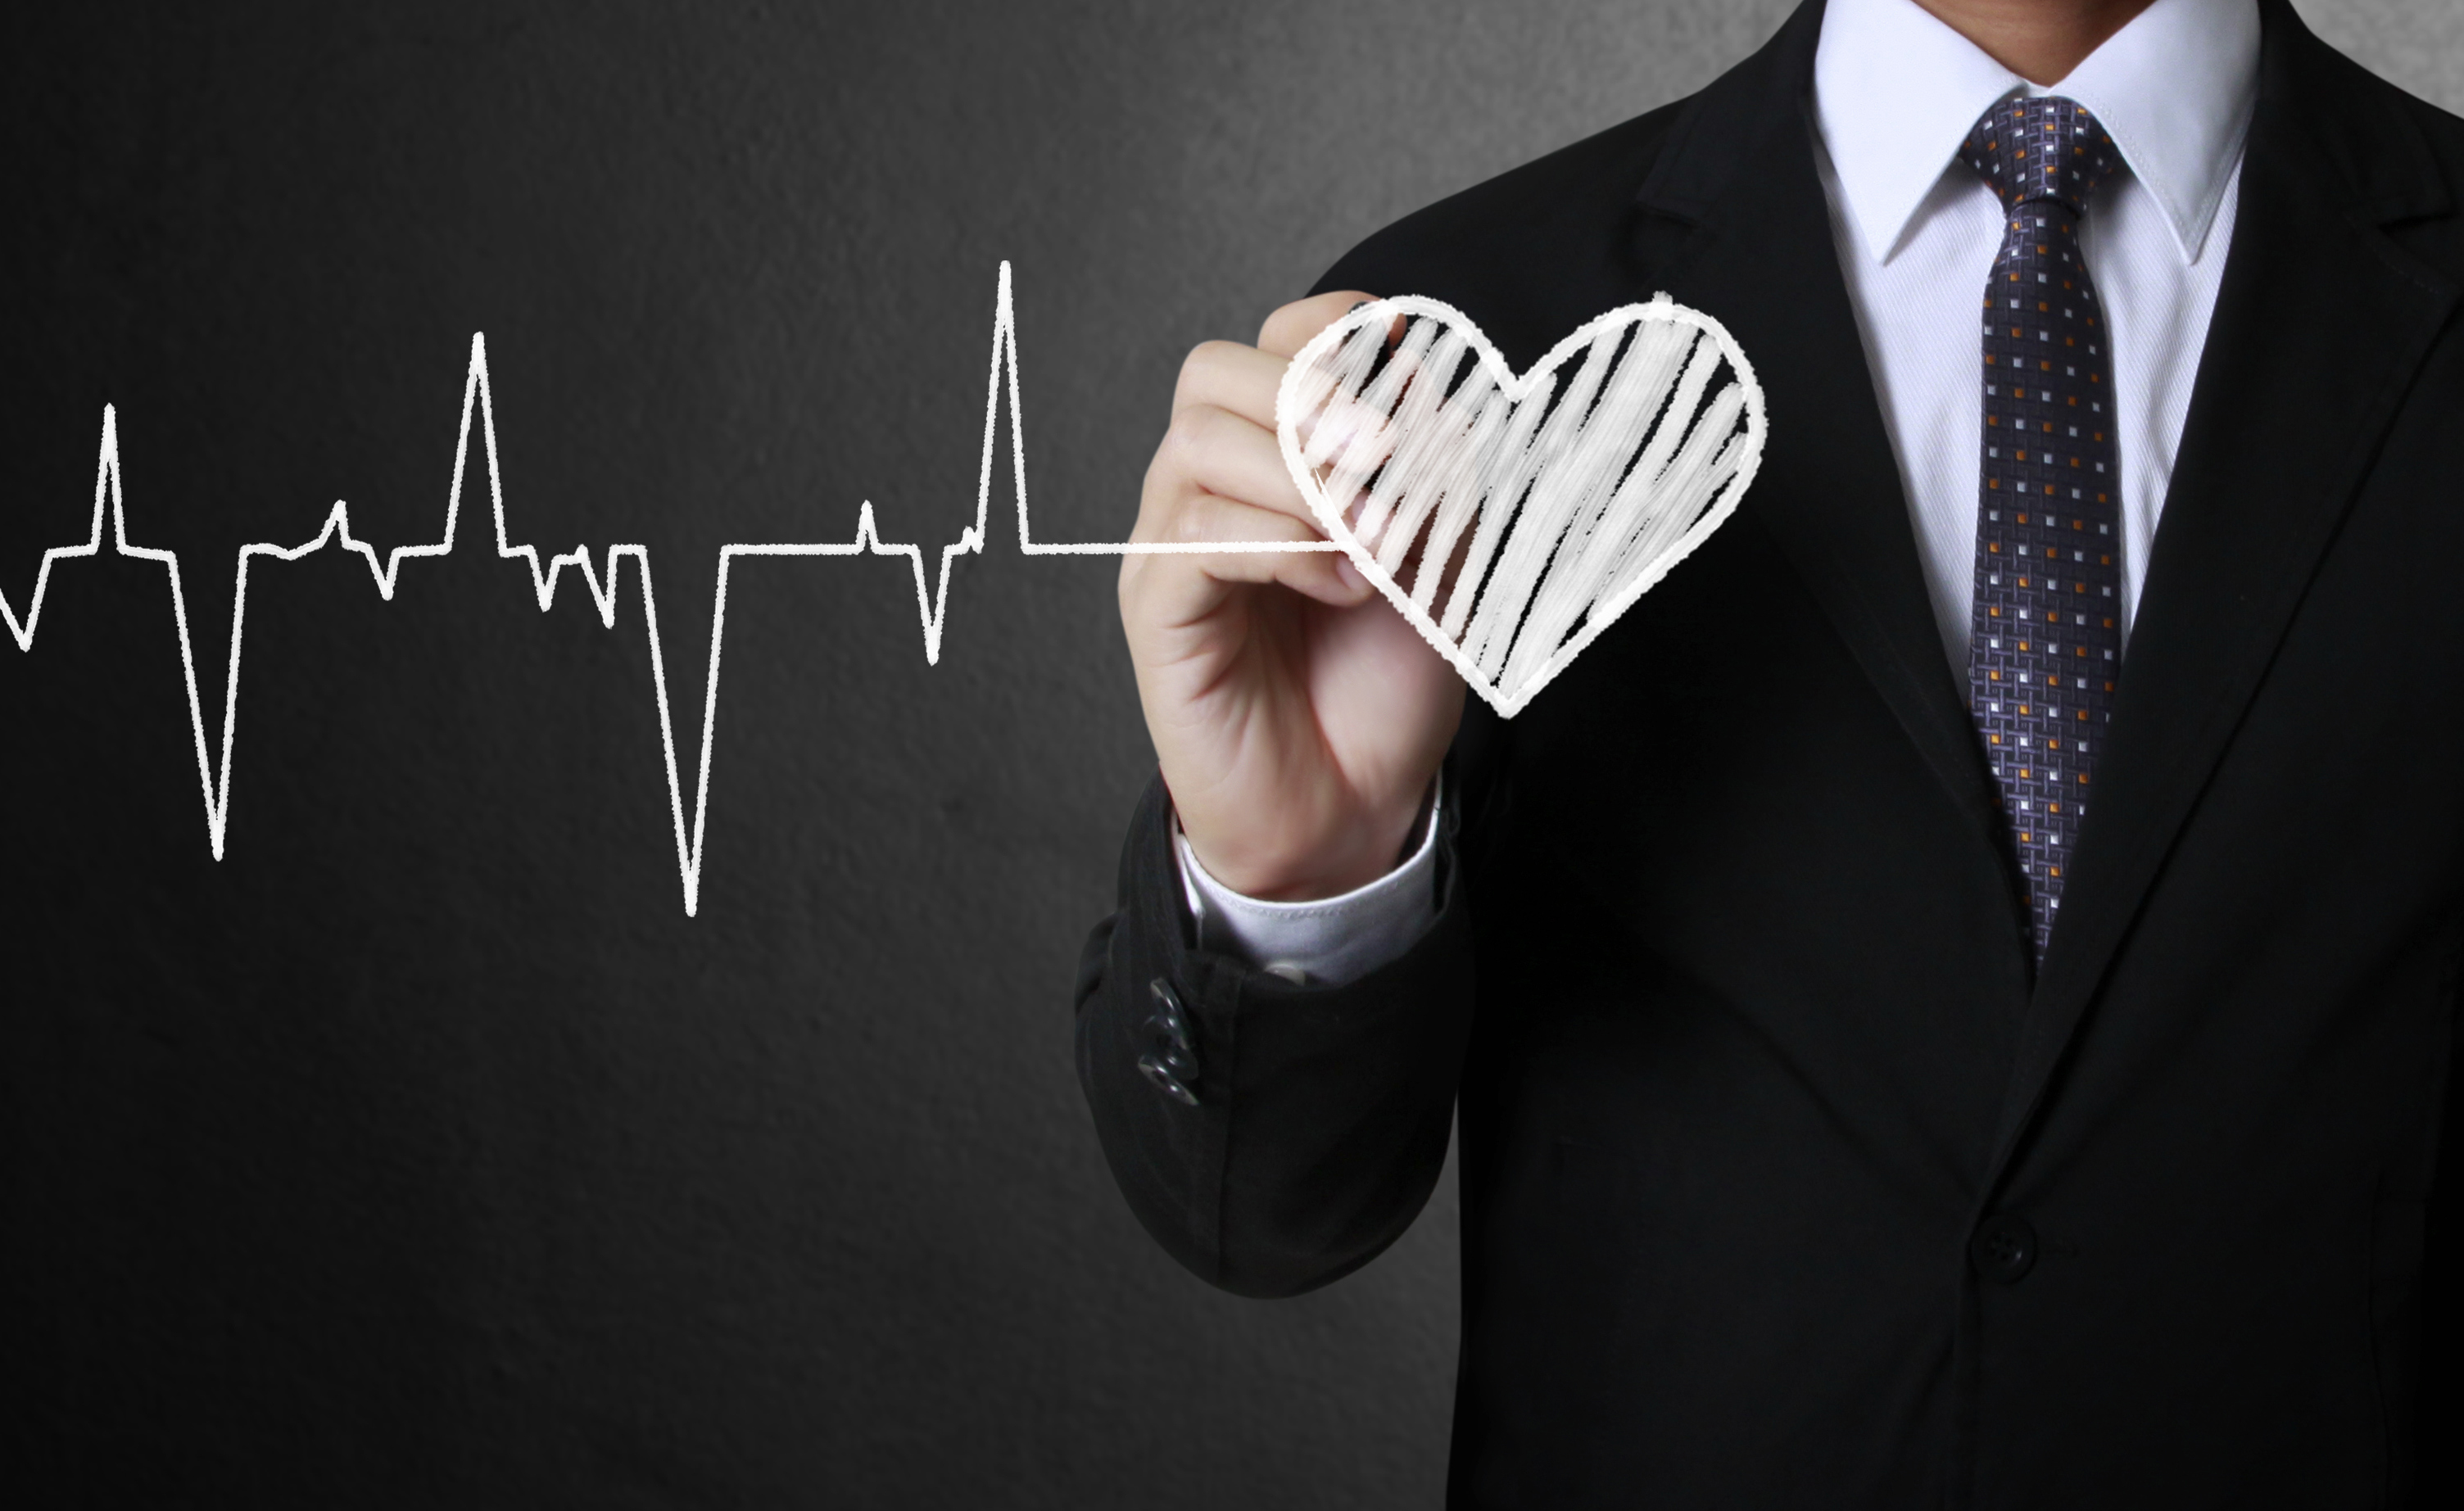 Ehrs Aid In Quick Data Collection For Cardiac Research